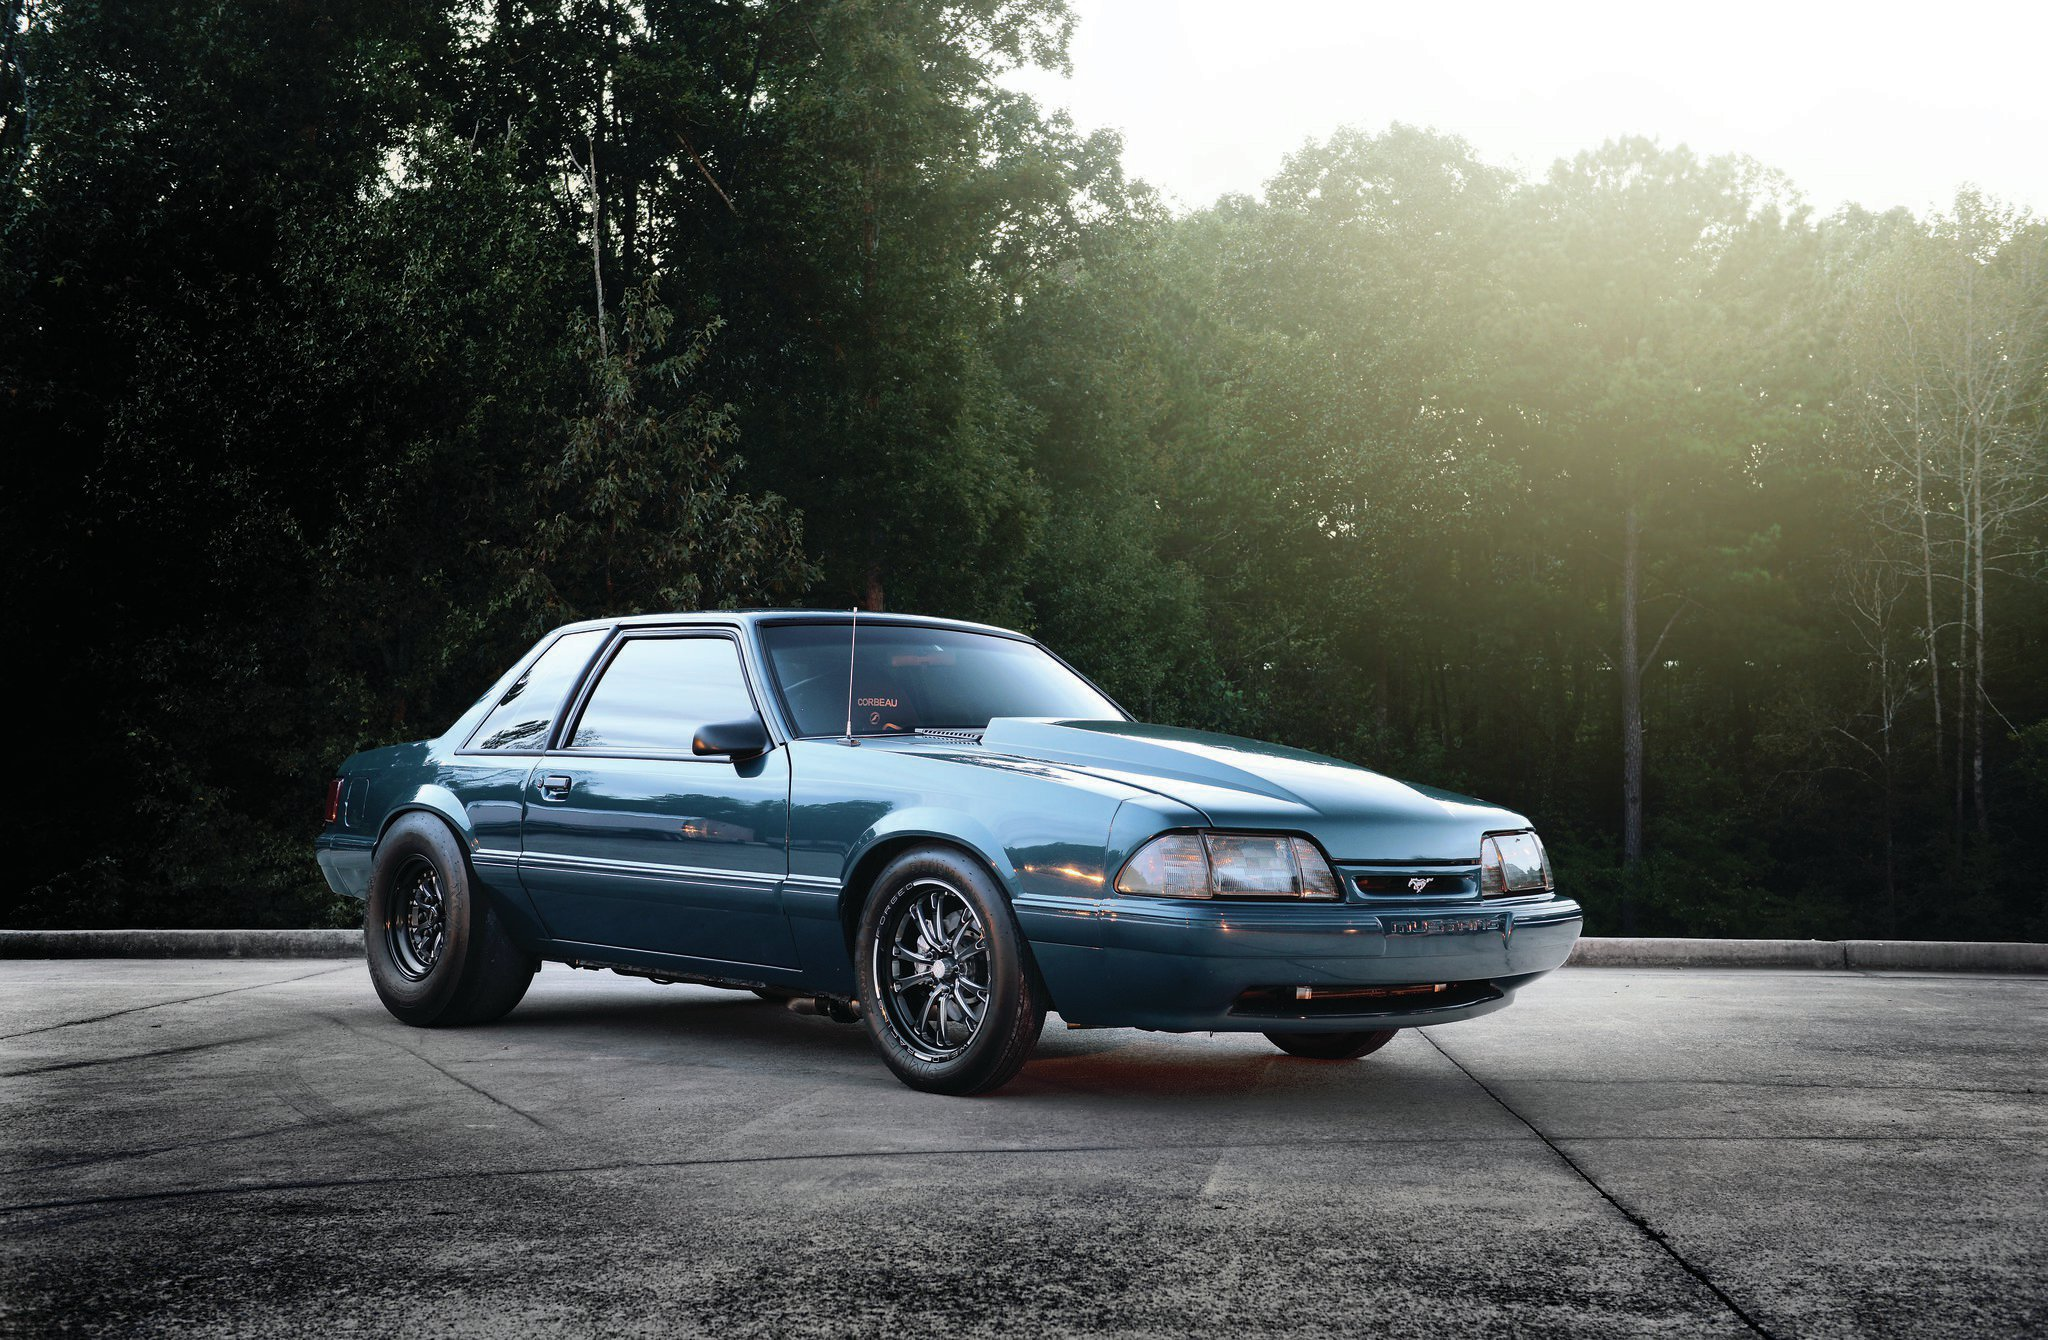 1993 Ford Mustang Lx Coupe Front Side View